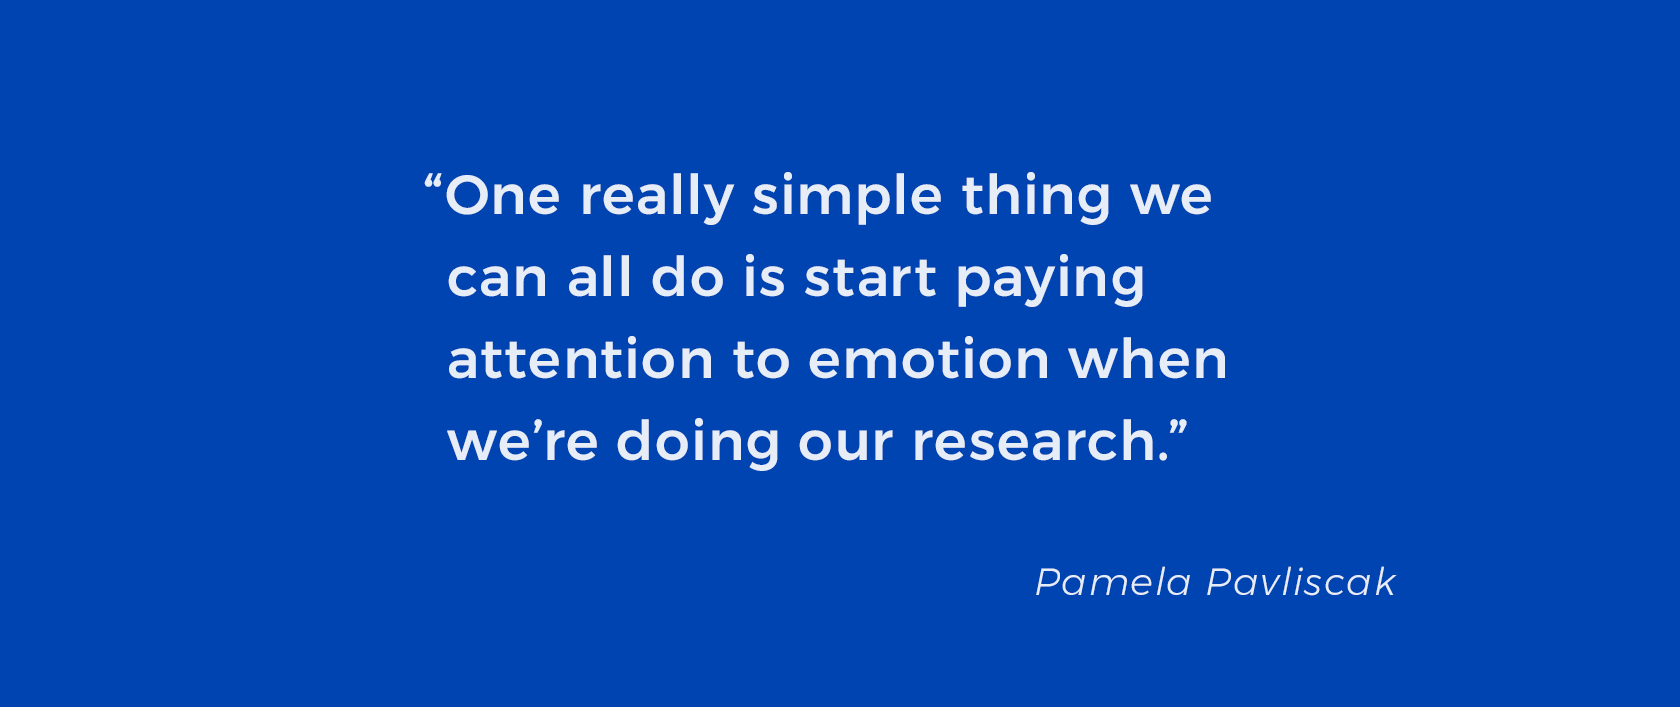 Design Talks: Quote about designing for emotion by Pamela Pavliscak